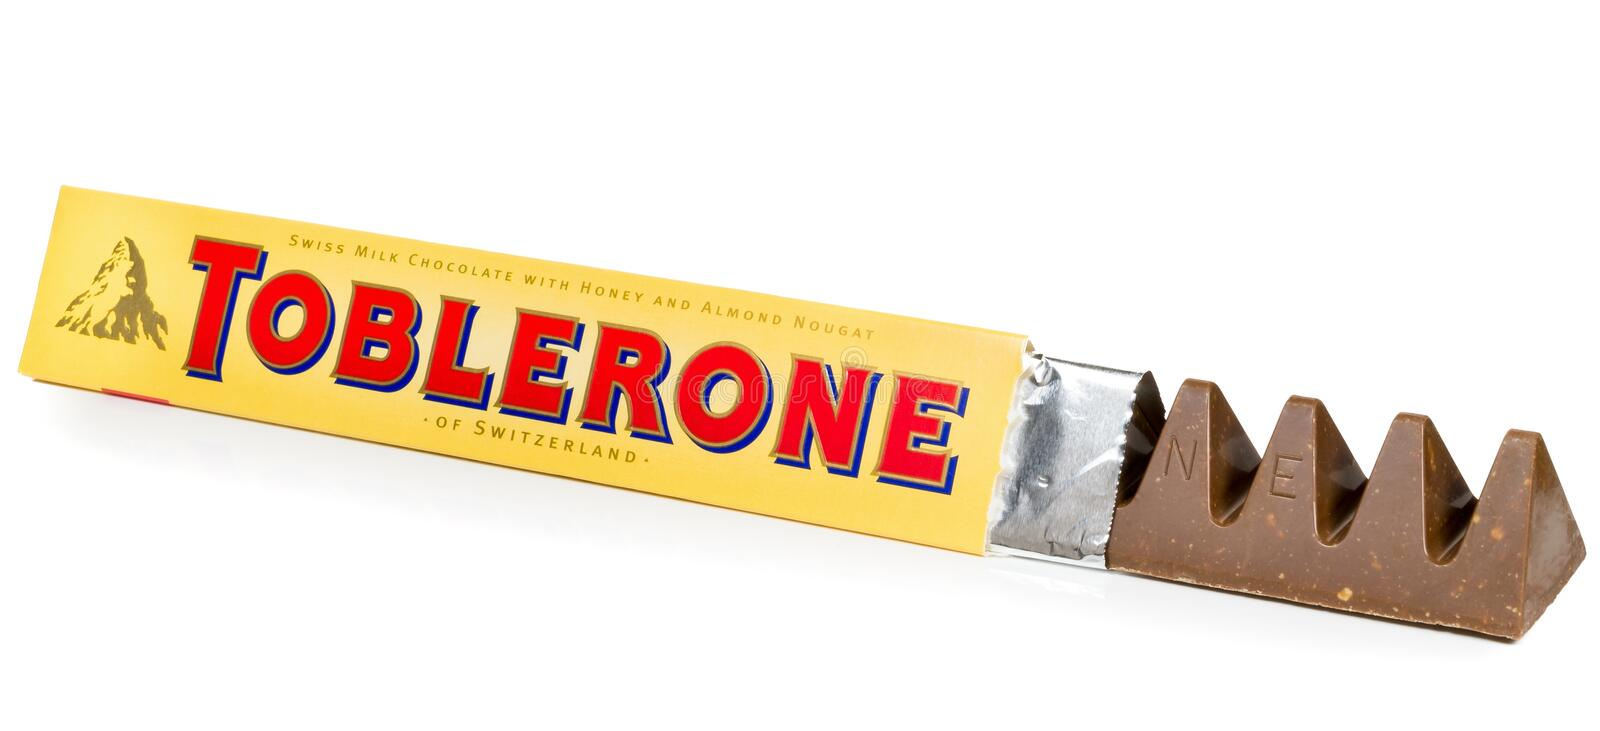 A bar of Toblerone milk cocolate. NIEDERSACHSEN, GERMANY OCTOBER 25, 2014: A bar of Toblerone milk chocolate on a white background royalty free stock photo